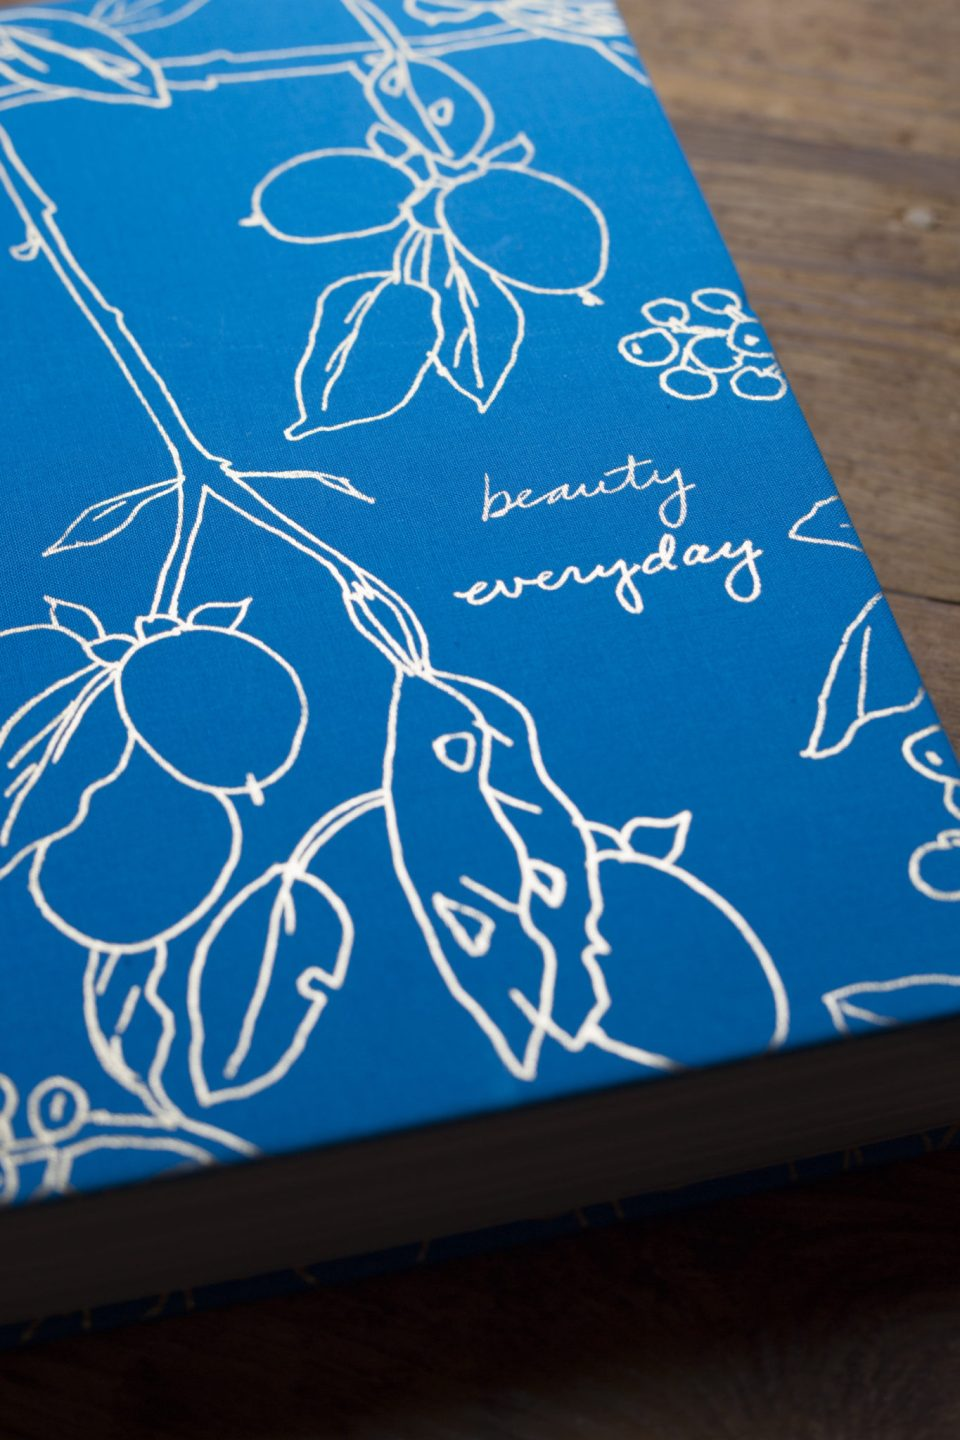 beauty_everyday_book-detail-960x1440 Bridal Registry Pick: Beauty Everyday and 5 Reasons We Love It!